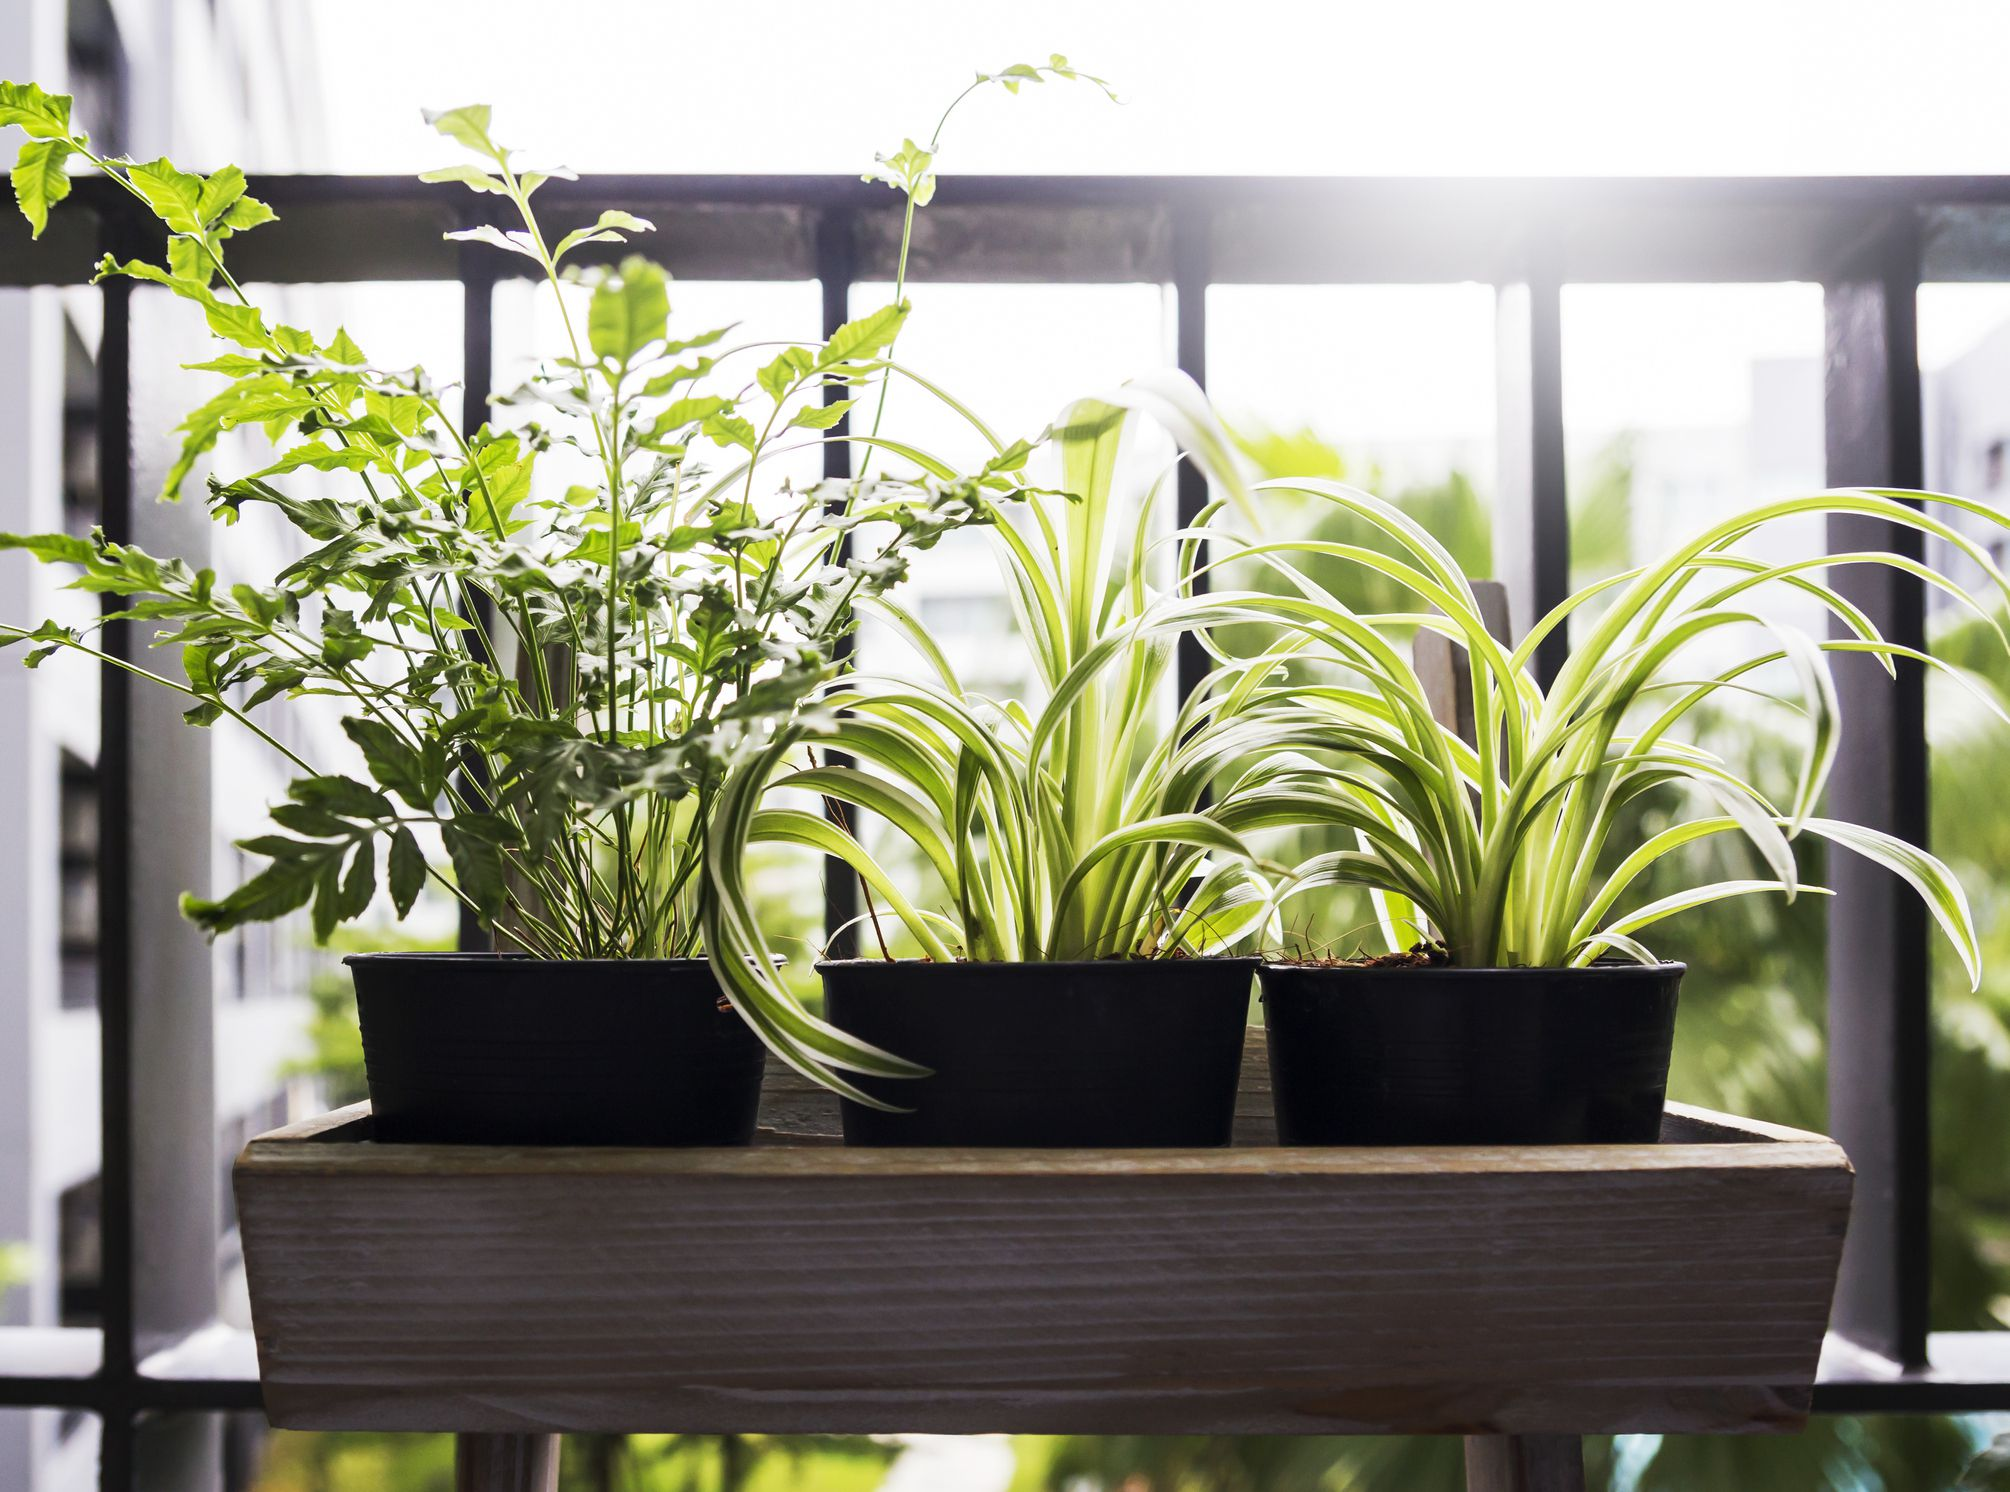 6 Houseplants to Boost Well-Being